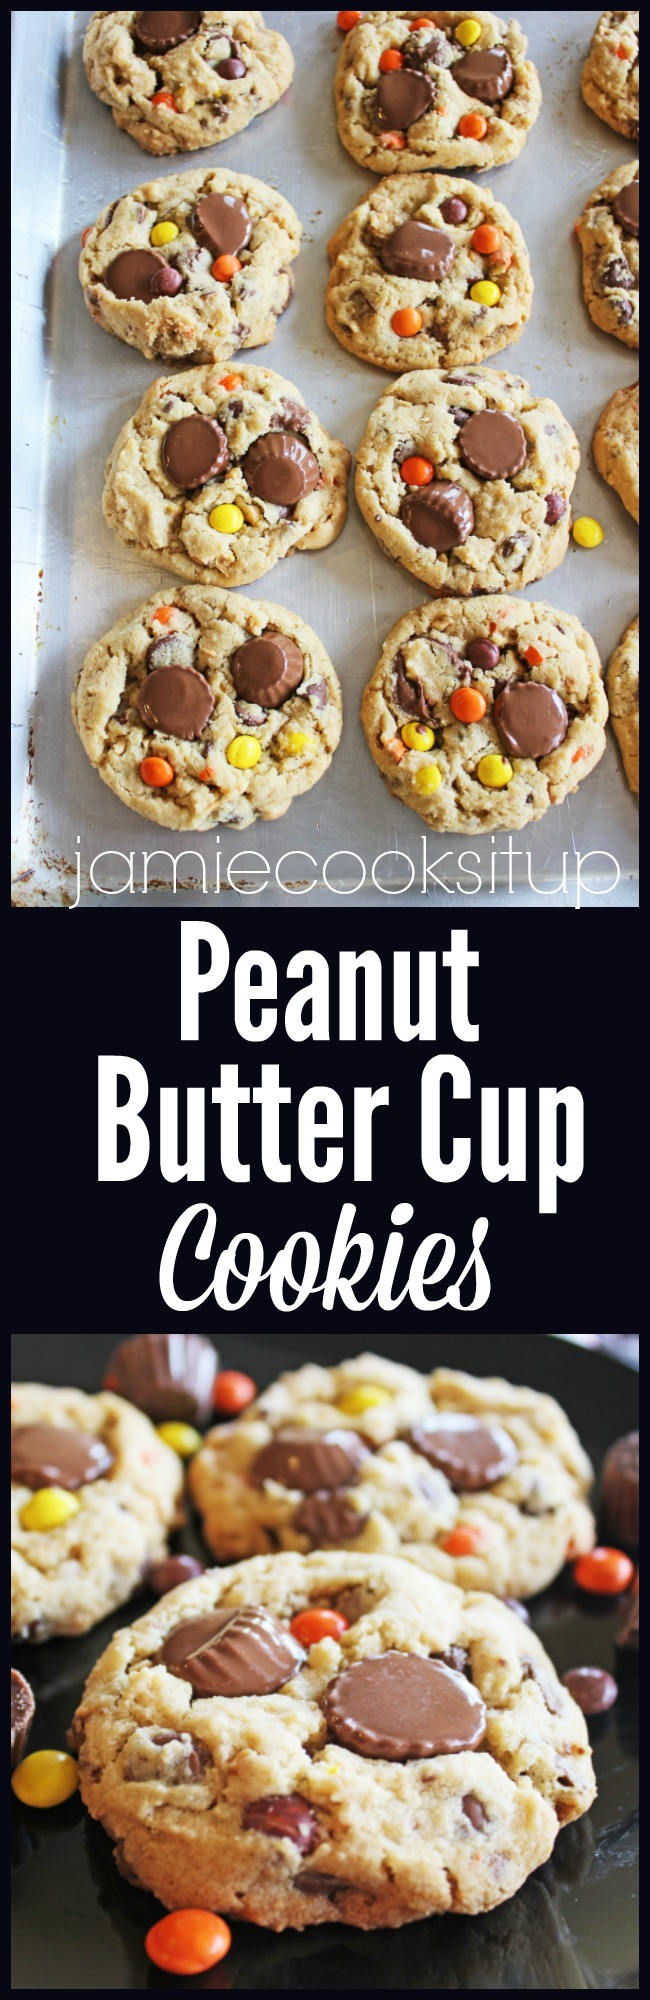 Peanut Butter Cup Cookies at Jamie Cooks It Up